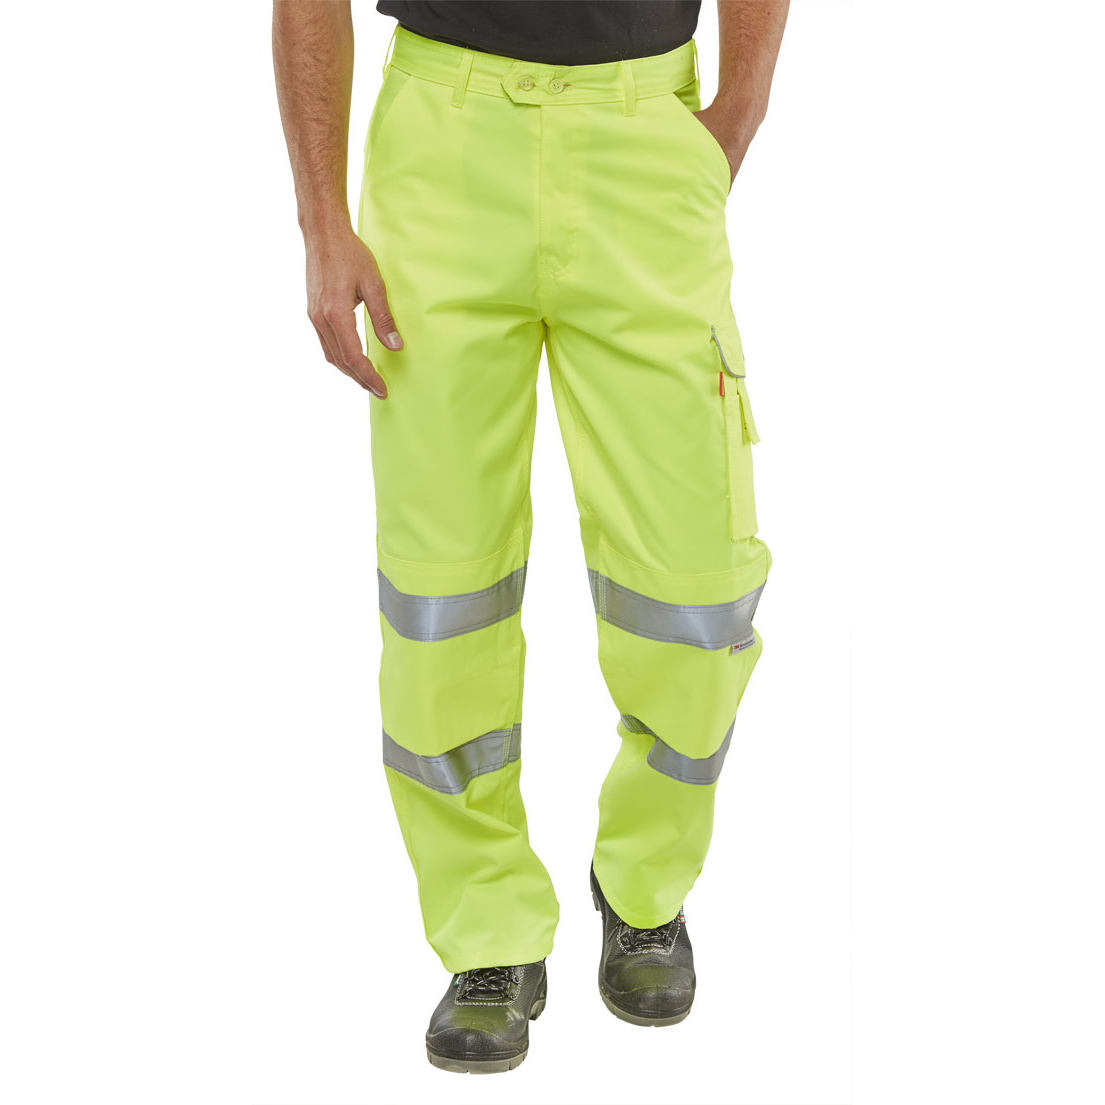 High Visibility BSeen Trousers Polycotton Hi-Vis EN471 Saturn Yellow 32 Long Ref PCTENSY32T *Up to 3 Day Leadtime*